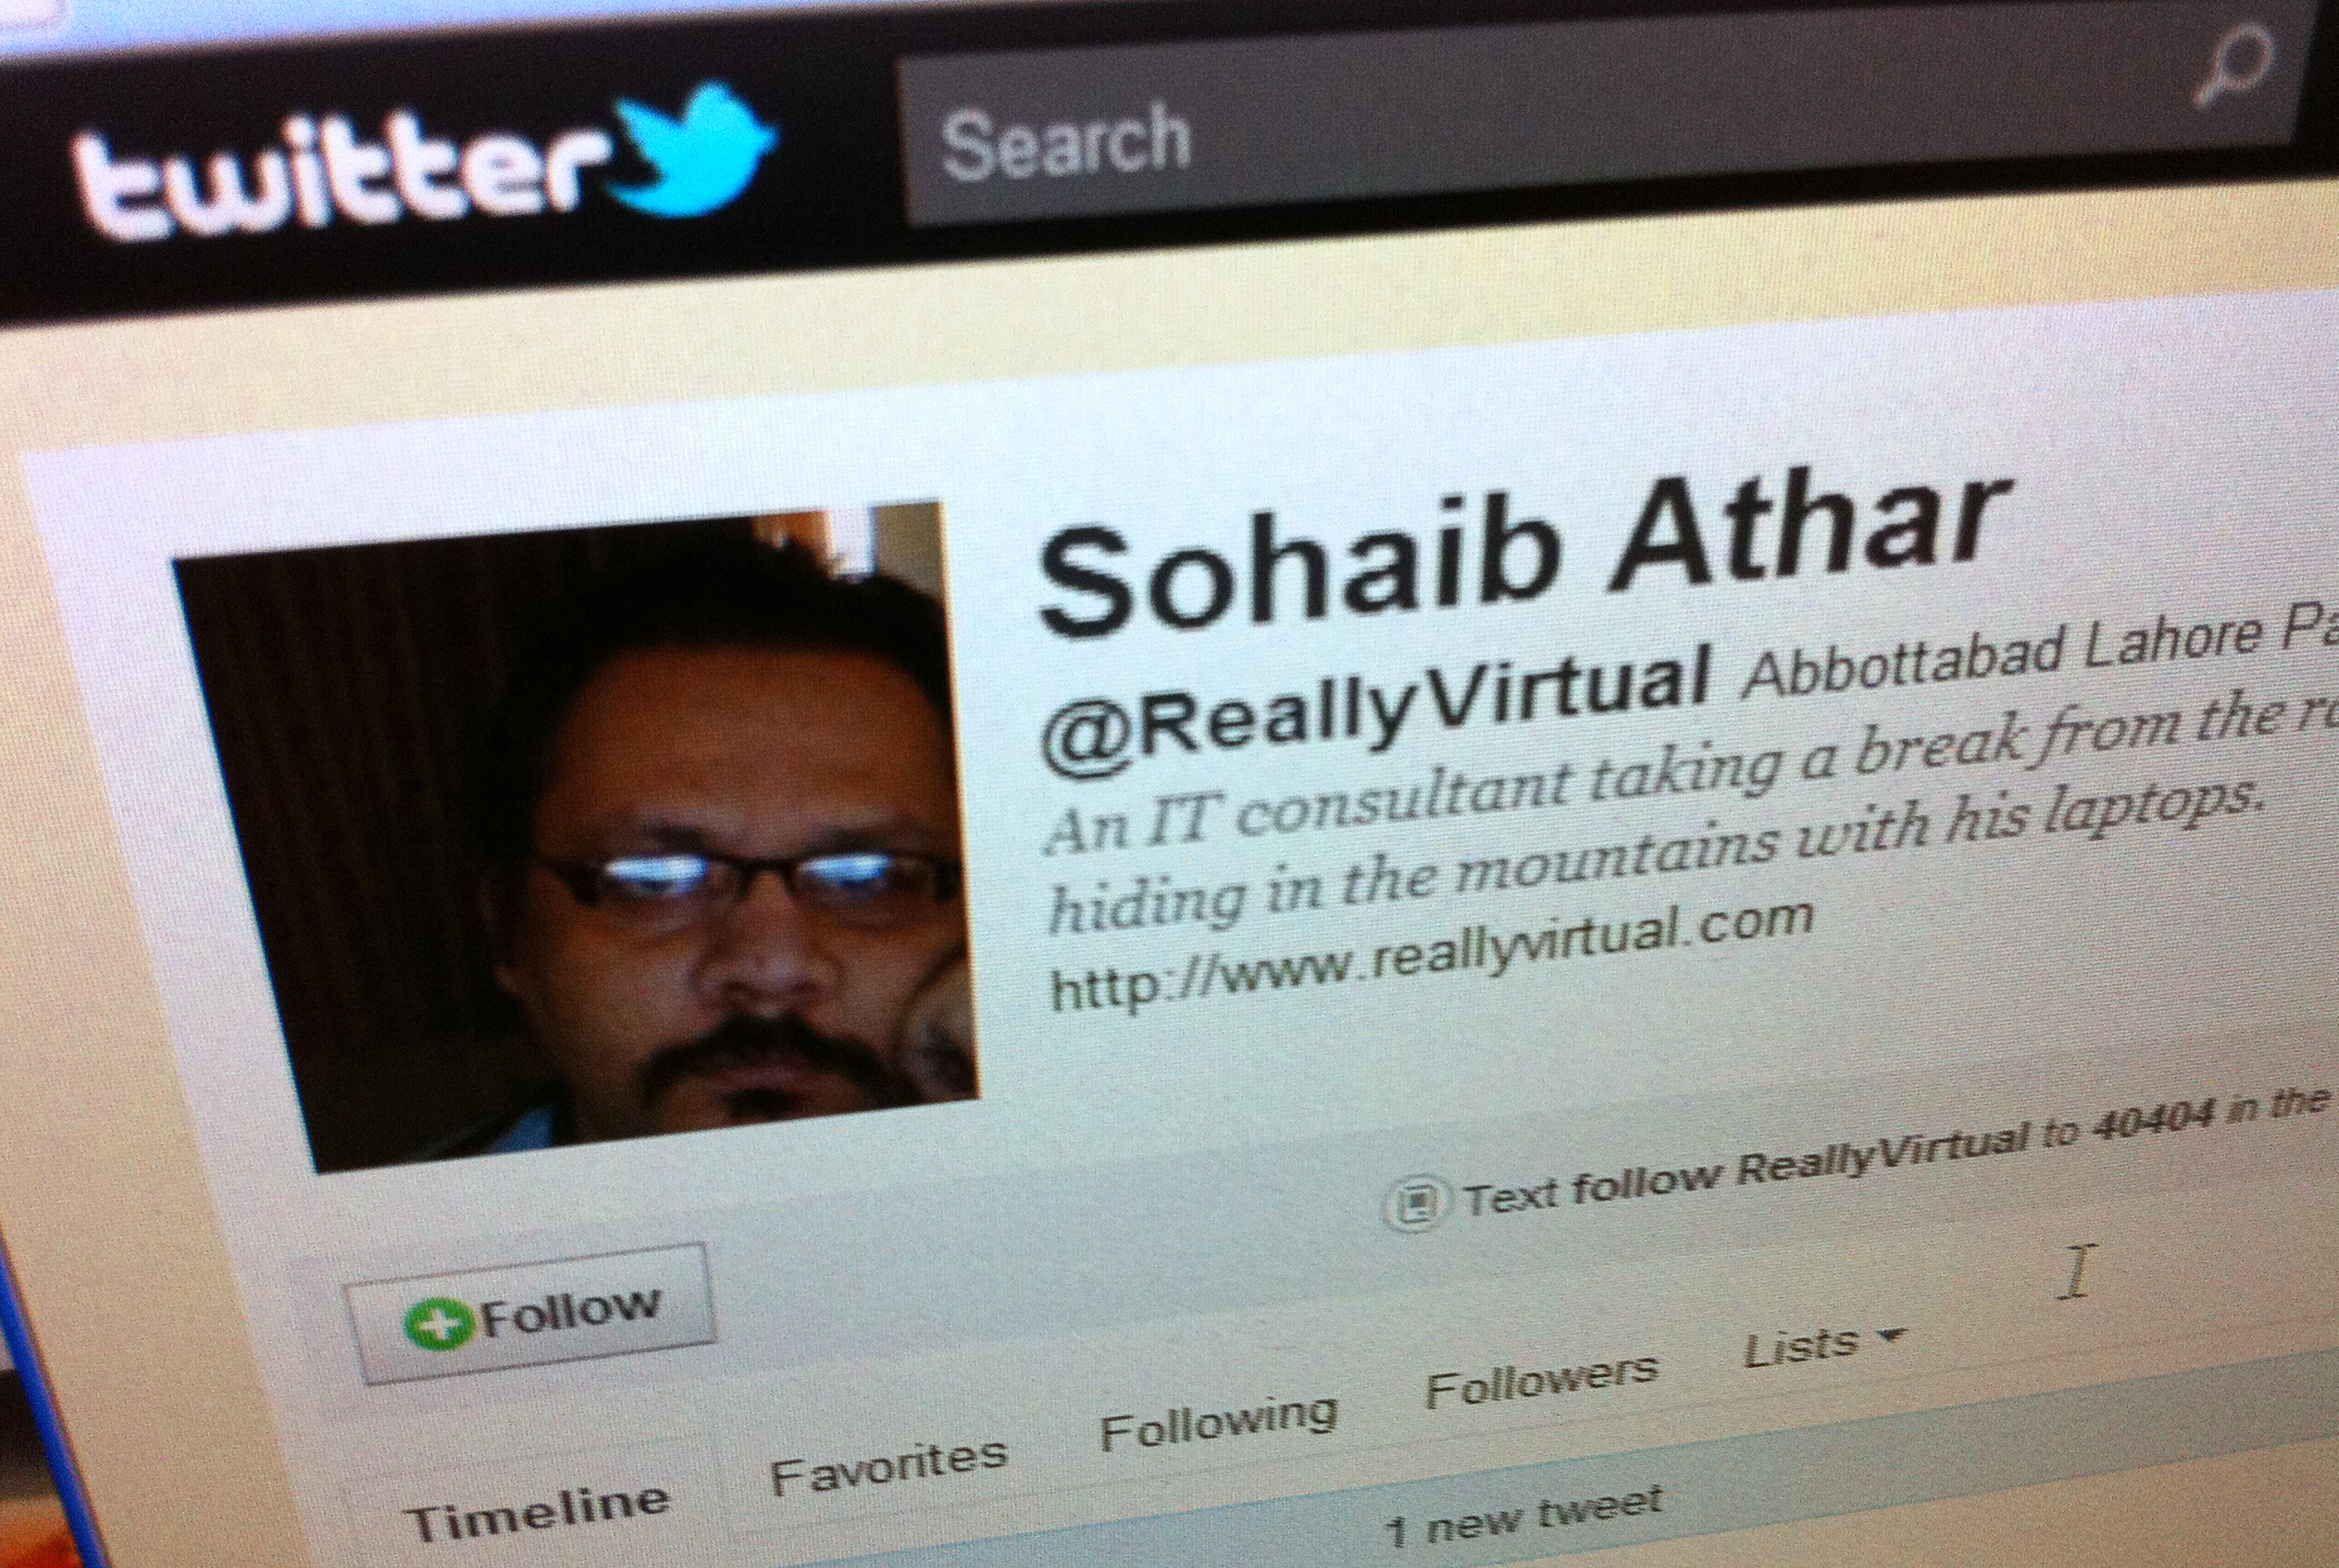 A computer screen in Singapore May 2, 2011, shows the Twitter page of Sohaib Athar. In the early hours of Monday, Athar reported on his Twitter account that a loud bang had rattled his windows in the Pakistani town of Abbottabad. A few hours later he posted another tweet: